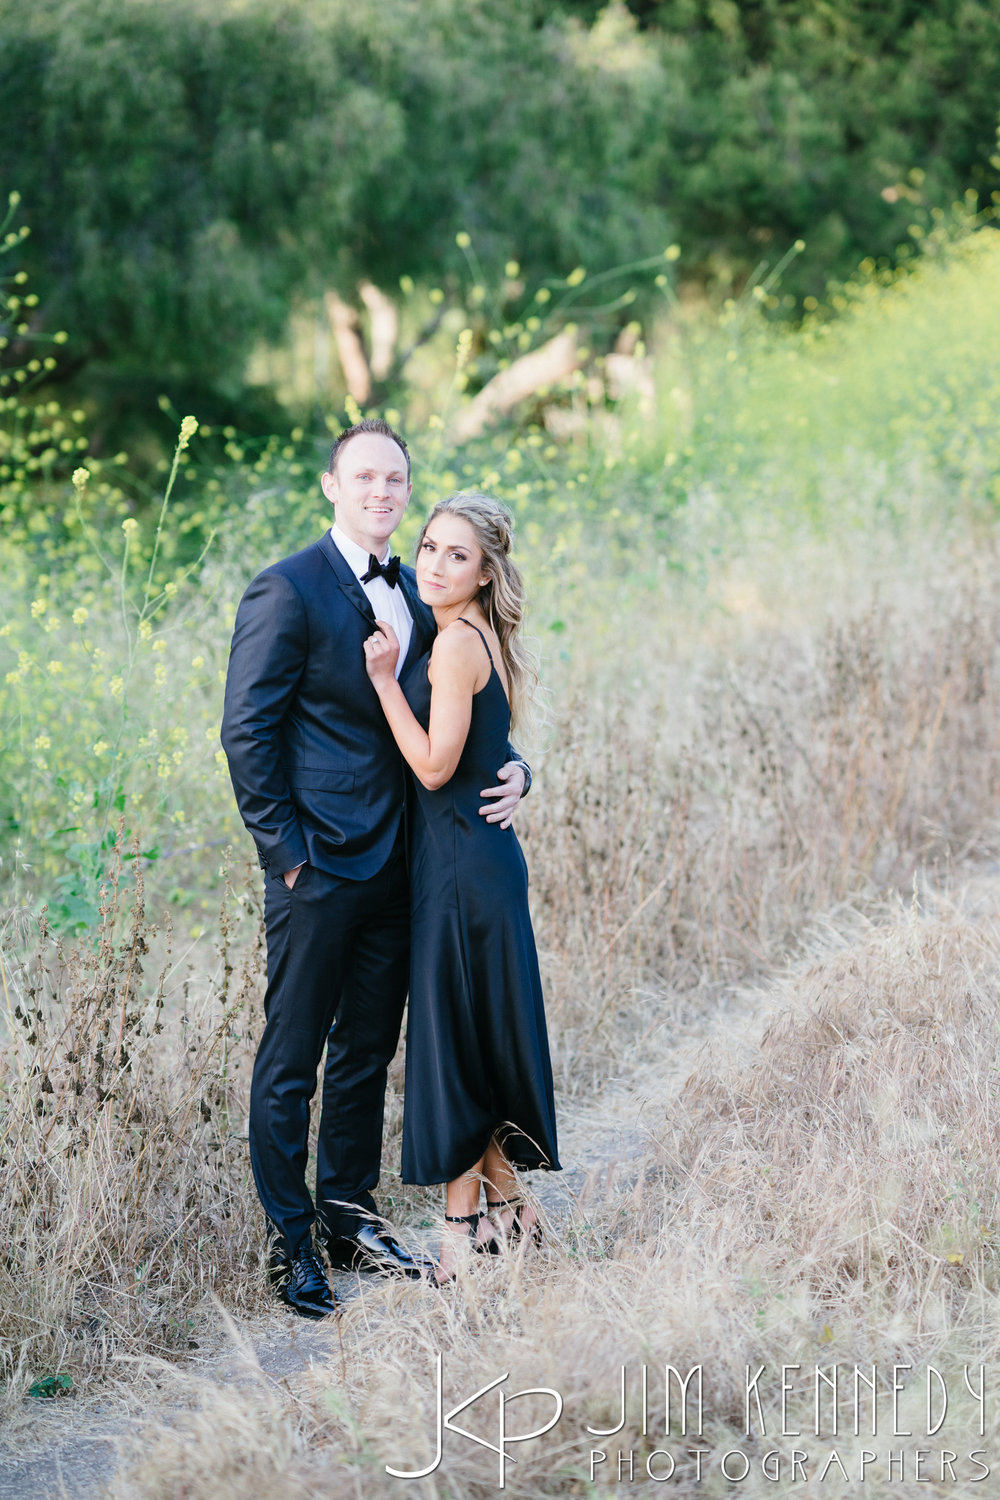 jim-kennedy-photogaphers-palos-verdes-engagement-session_-17.jpg